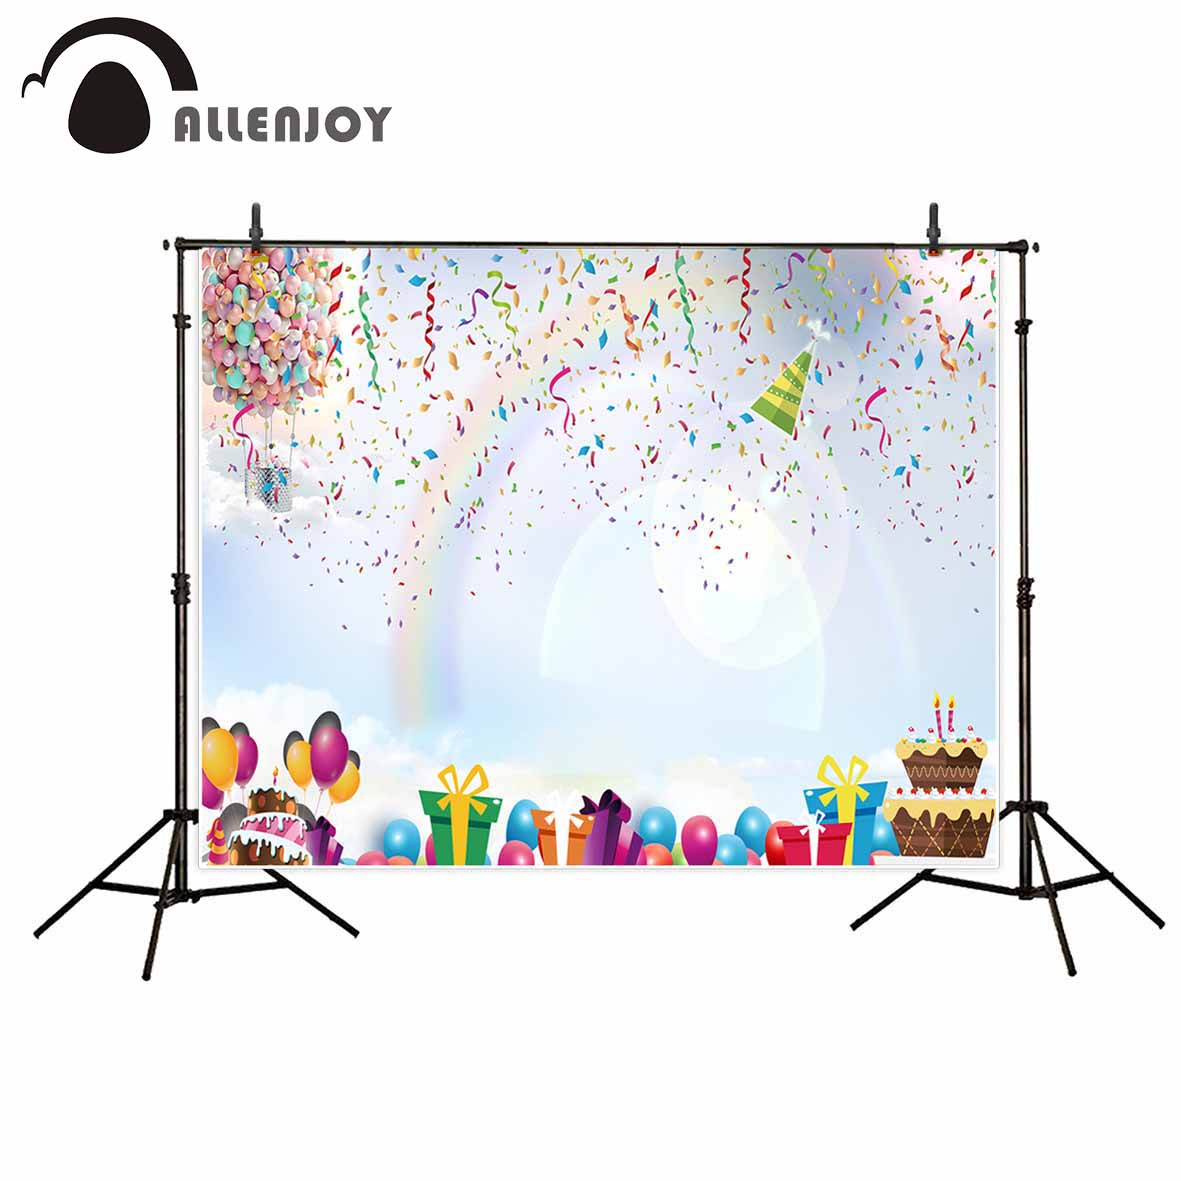 Allenjoy photography background Ribbon Balloons Gifts Celebration Party Children new backdrop photocall camera fotografica